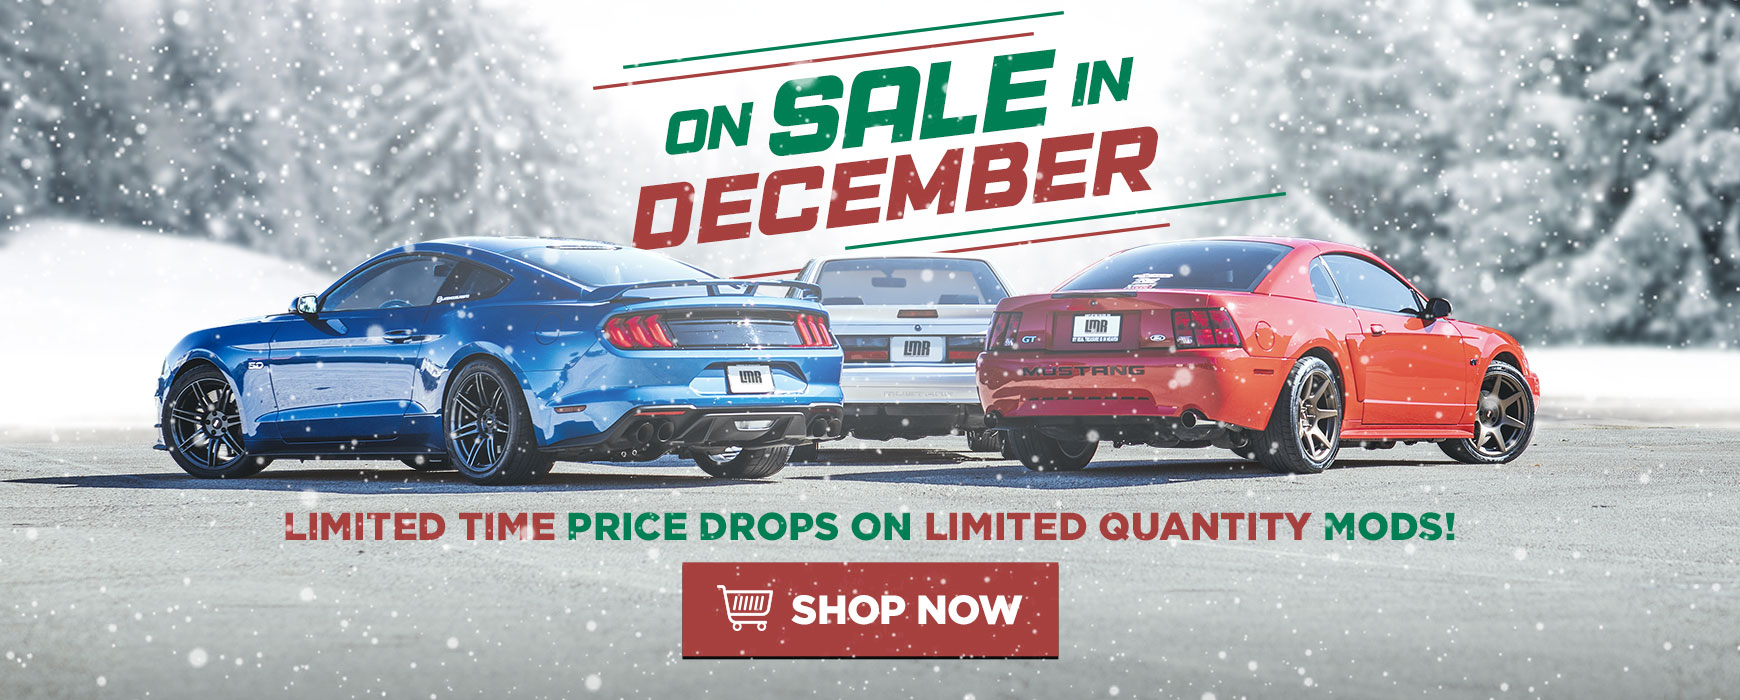 LMR Mustang Parts On Sale